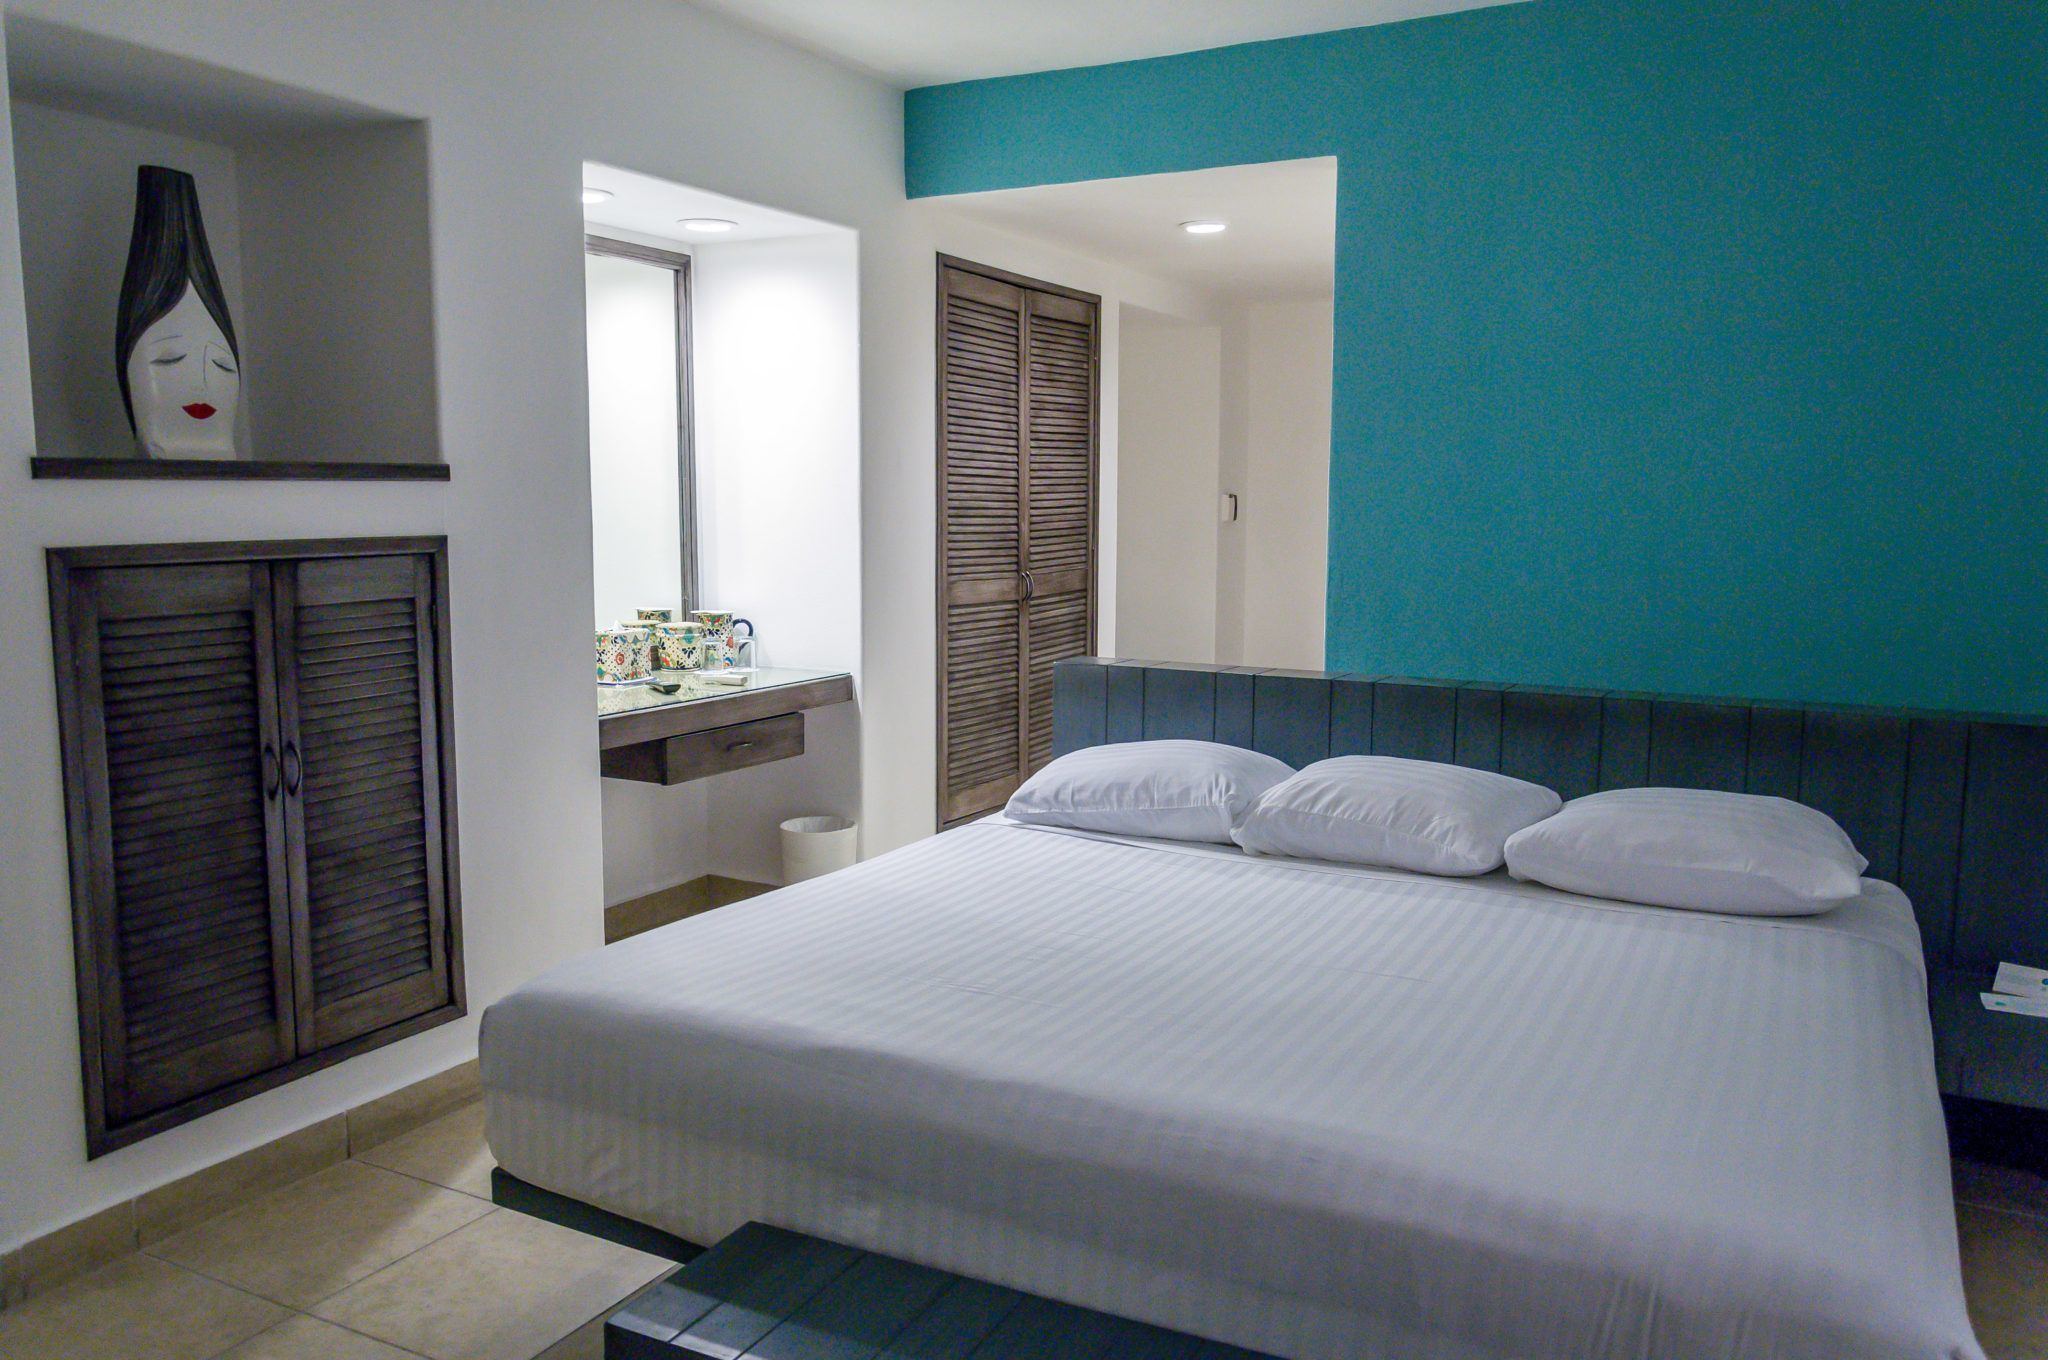 The bedrooms at the Hotel B Cozumel